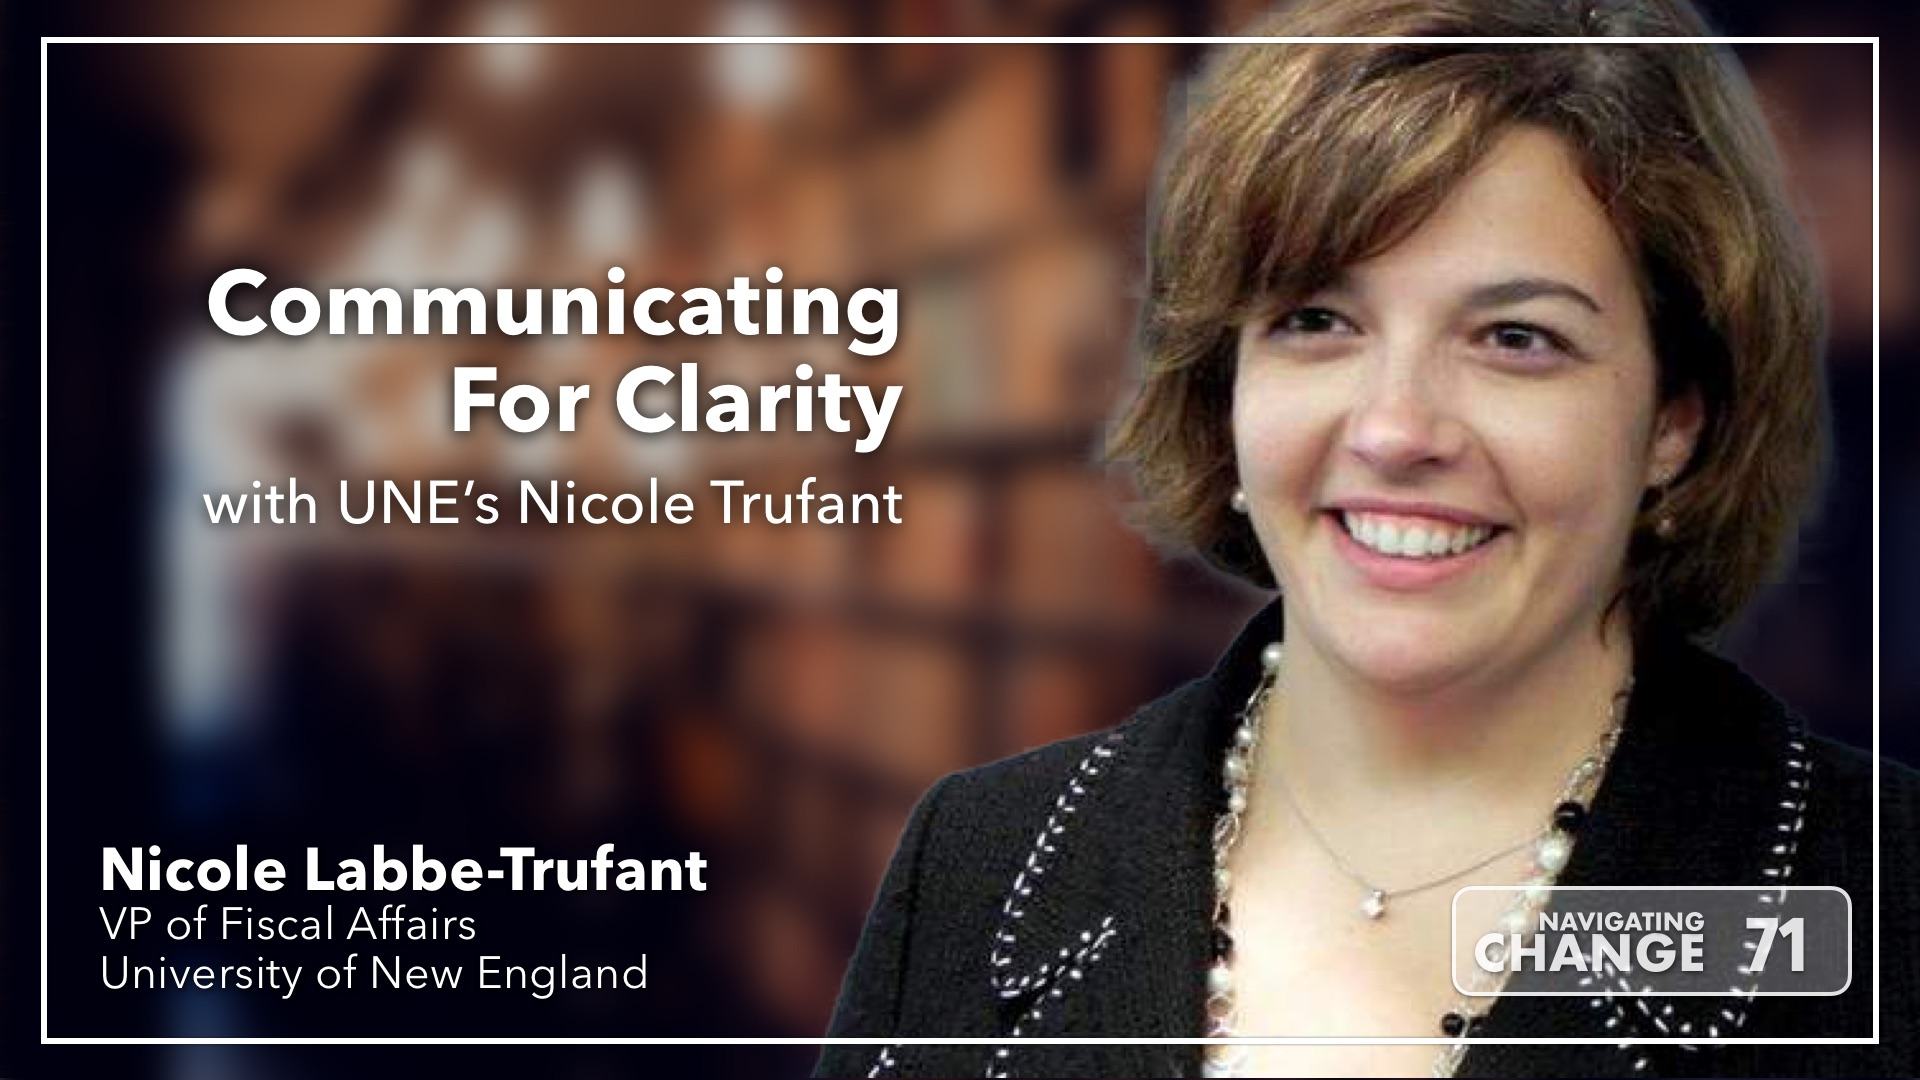 Listen to Communicating for Clarity on Navigating Change The Education Podcast